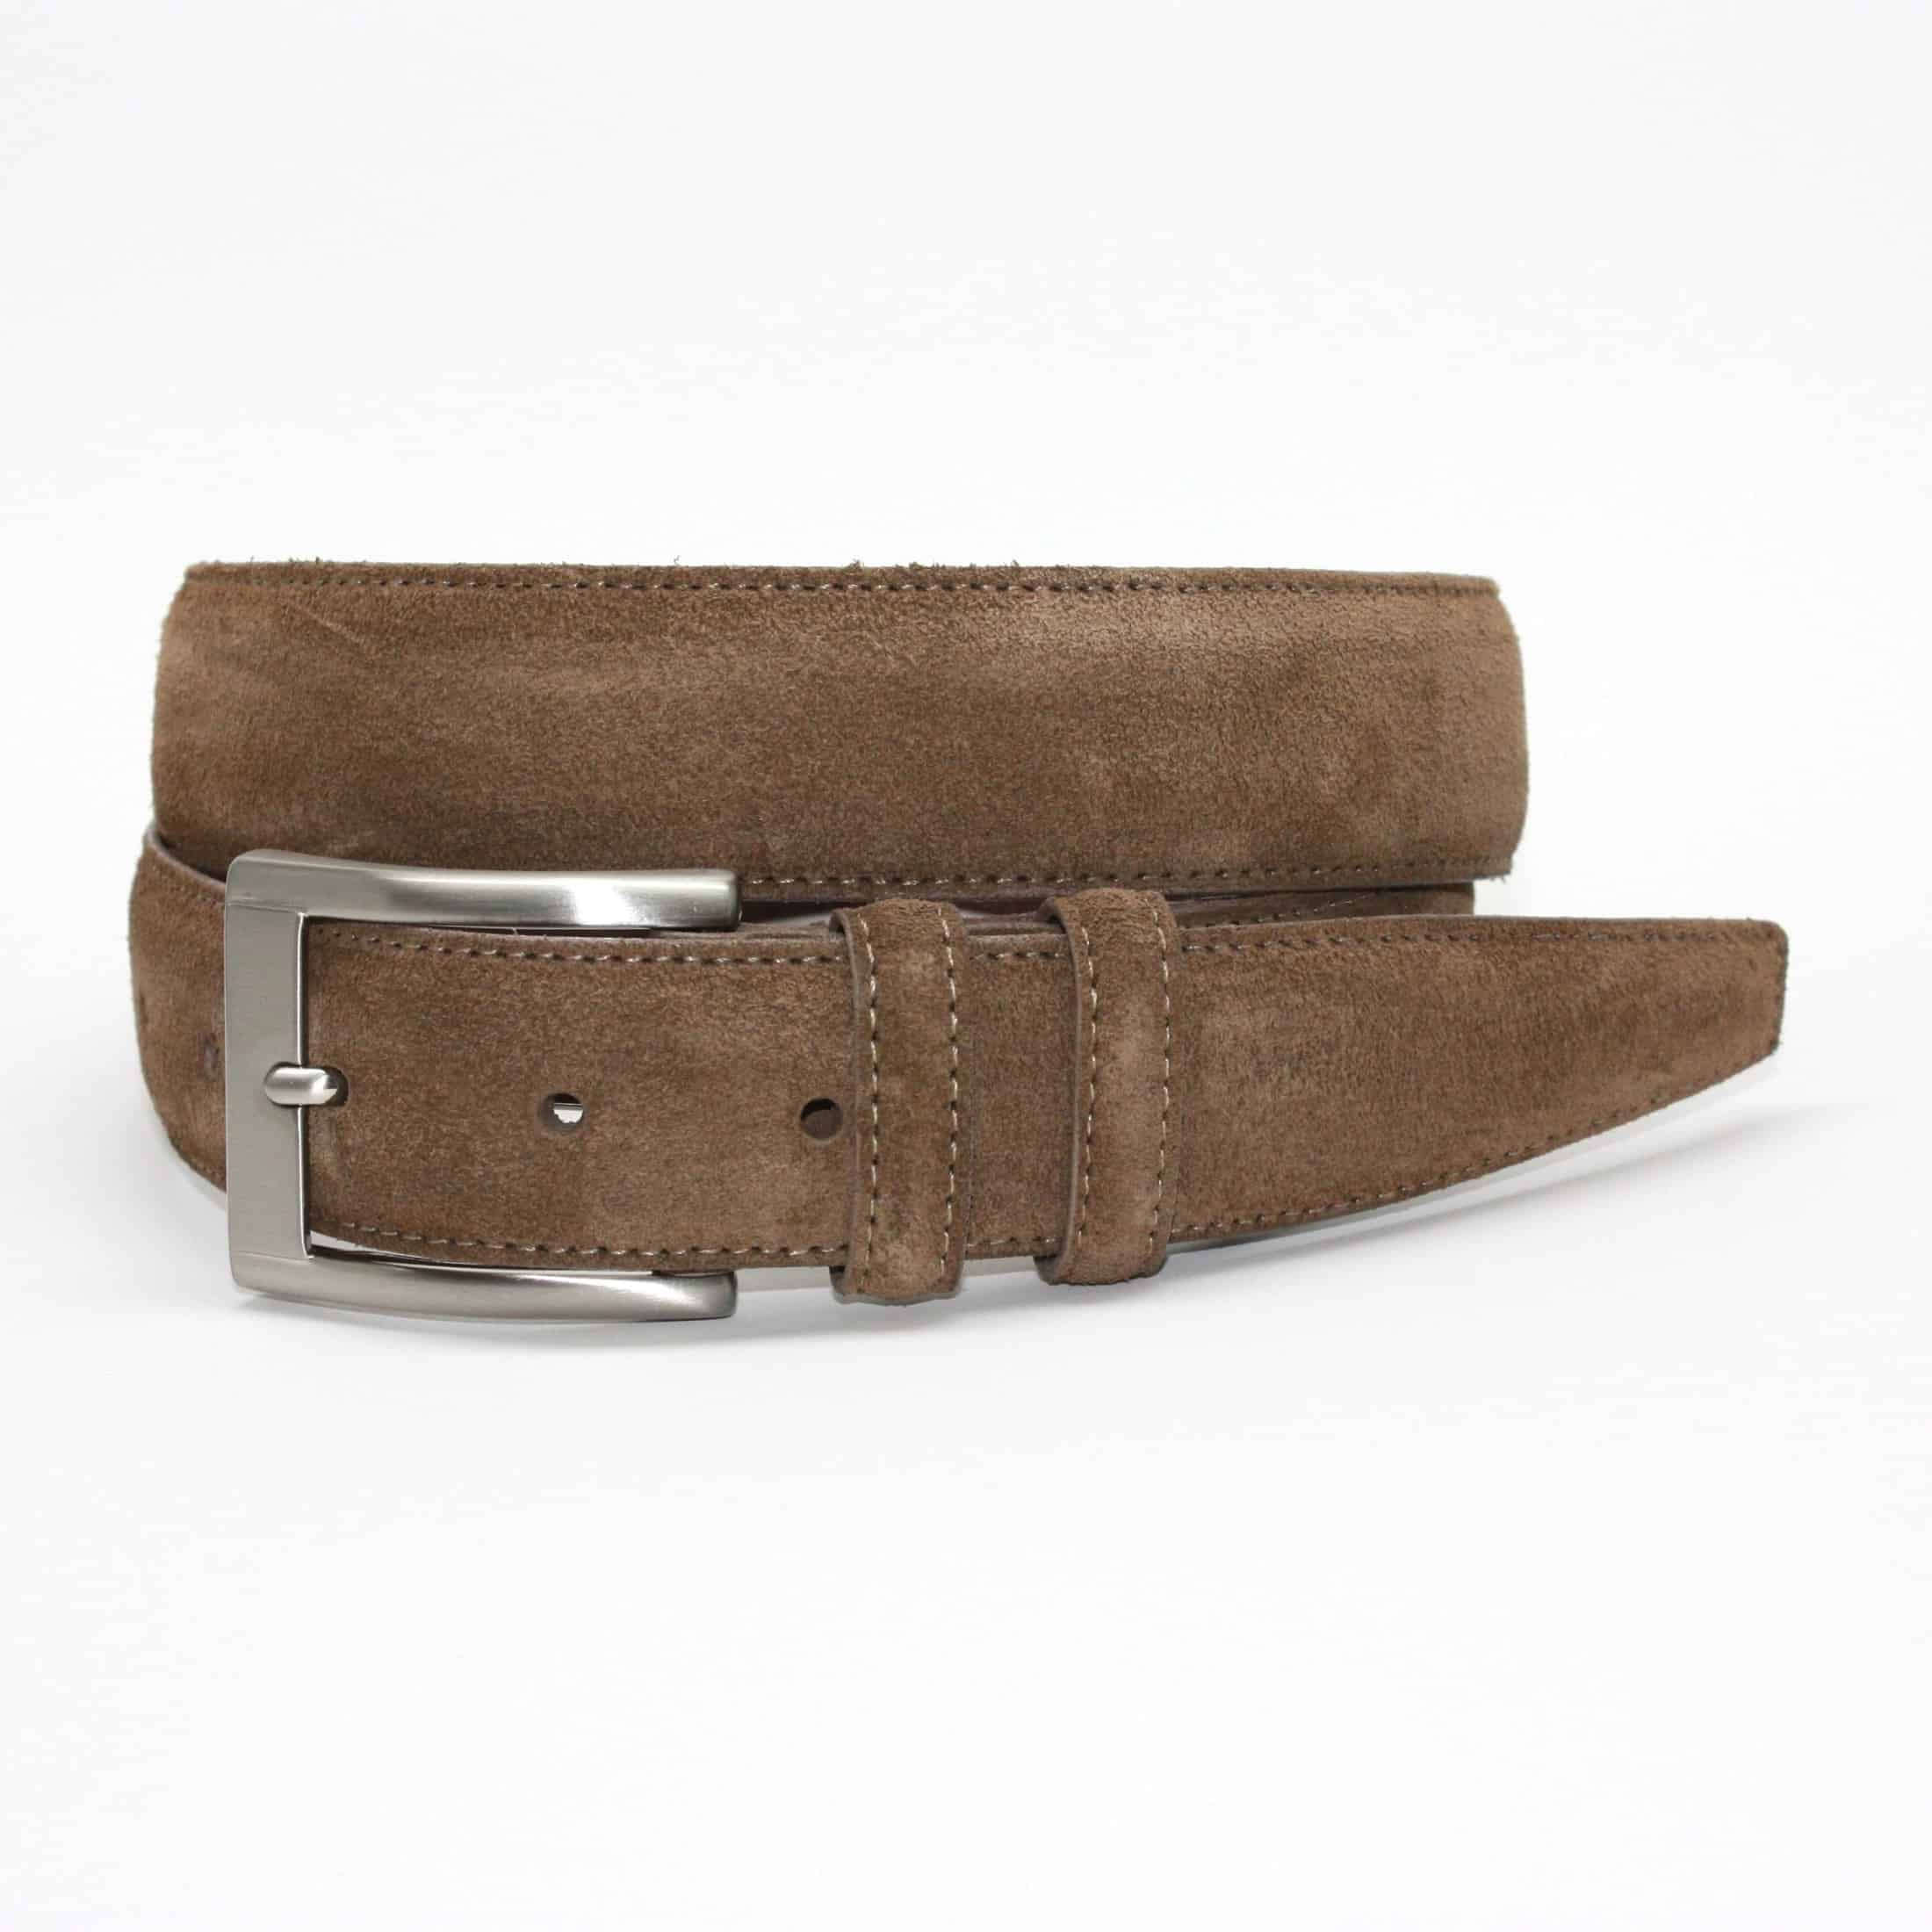 Italian Sueded Calfskin Belt - Whiskey,BELT,Gent Row, | GentRow.com